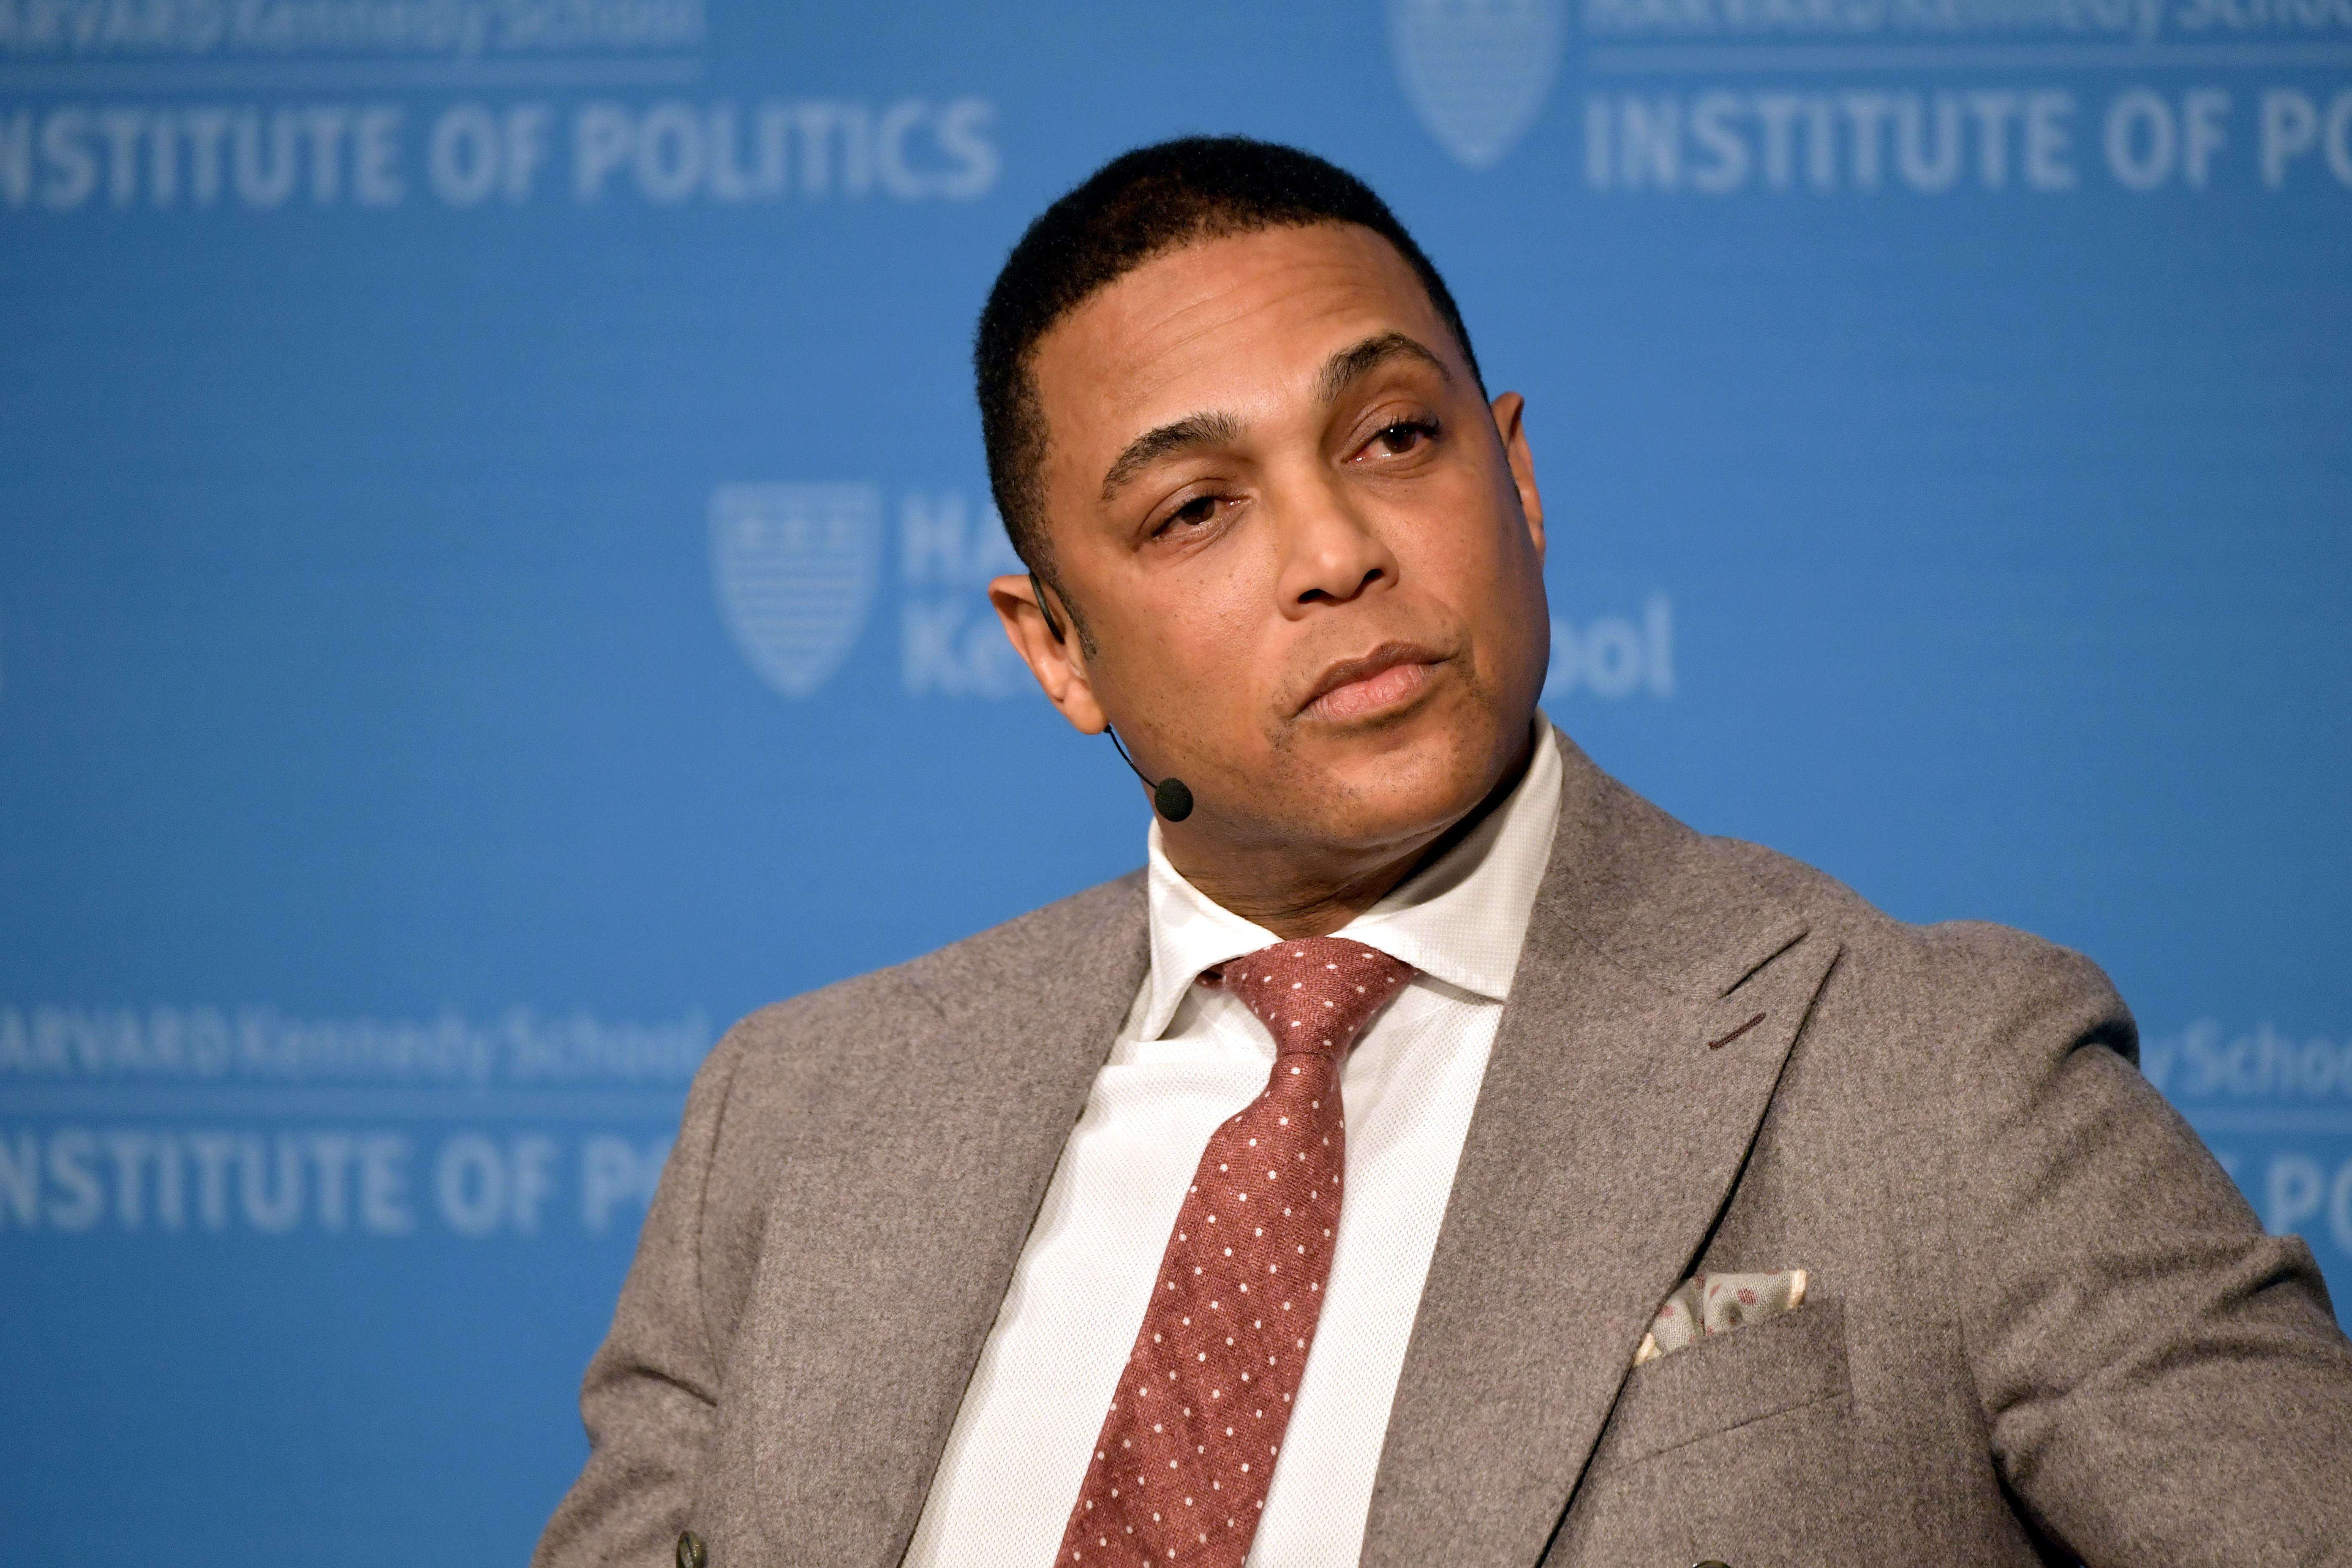 """Don Lemon at Harvard University Kennedy School of Government Institute of Politics for a program titled """"Race, Media and Politics"""" on February 22, 2019 